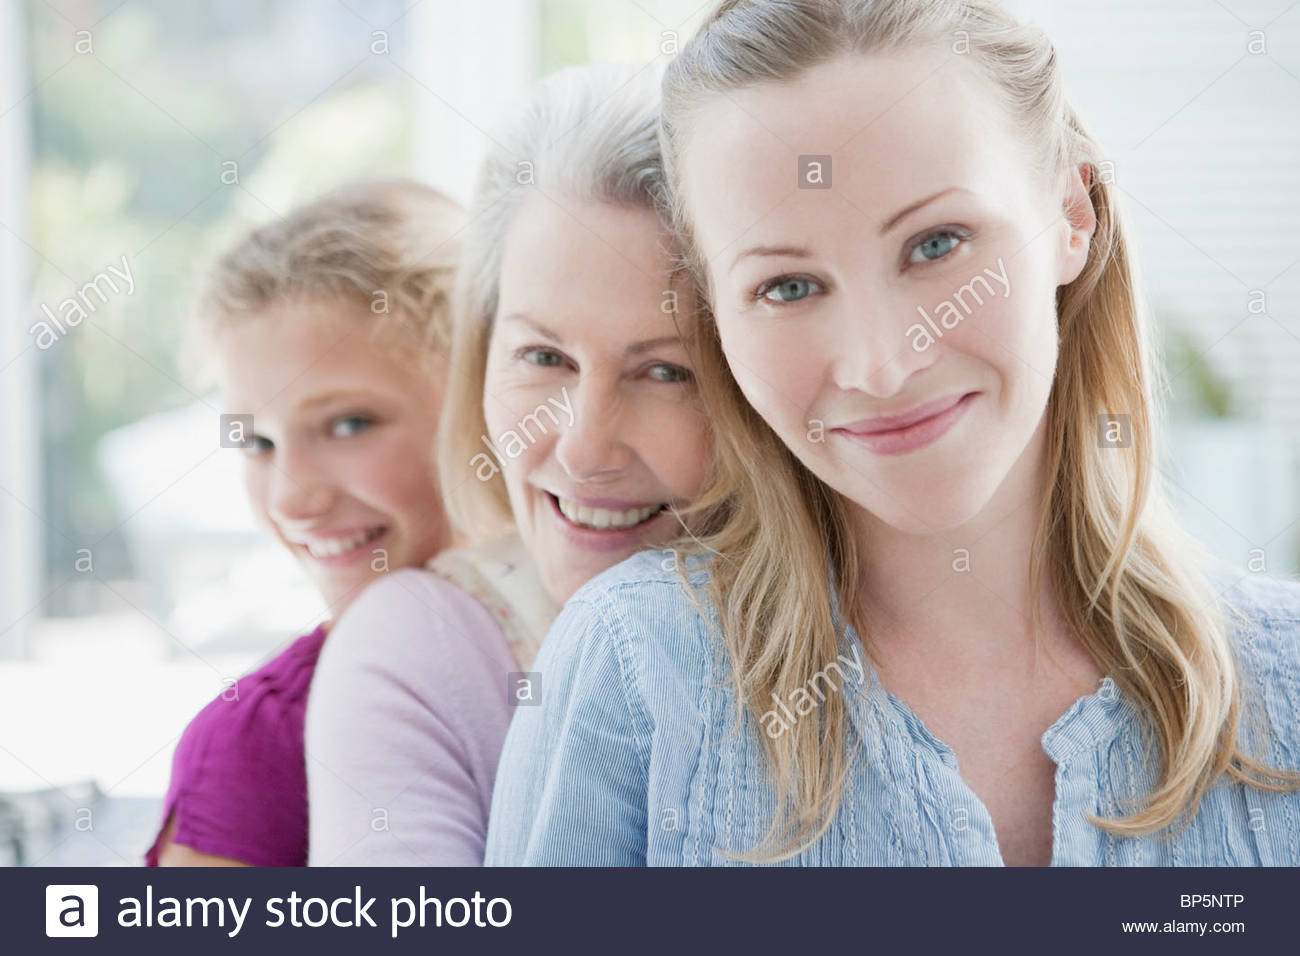 Smiling grandmother, mother and daughter hugging - Stock Image